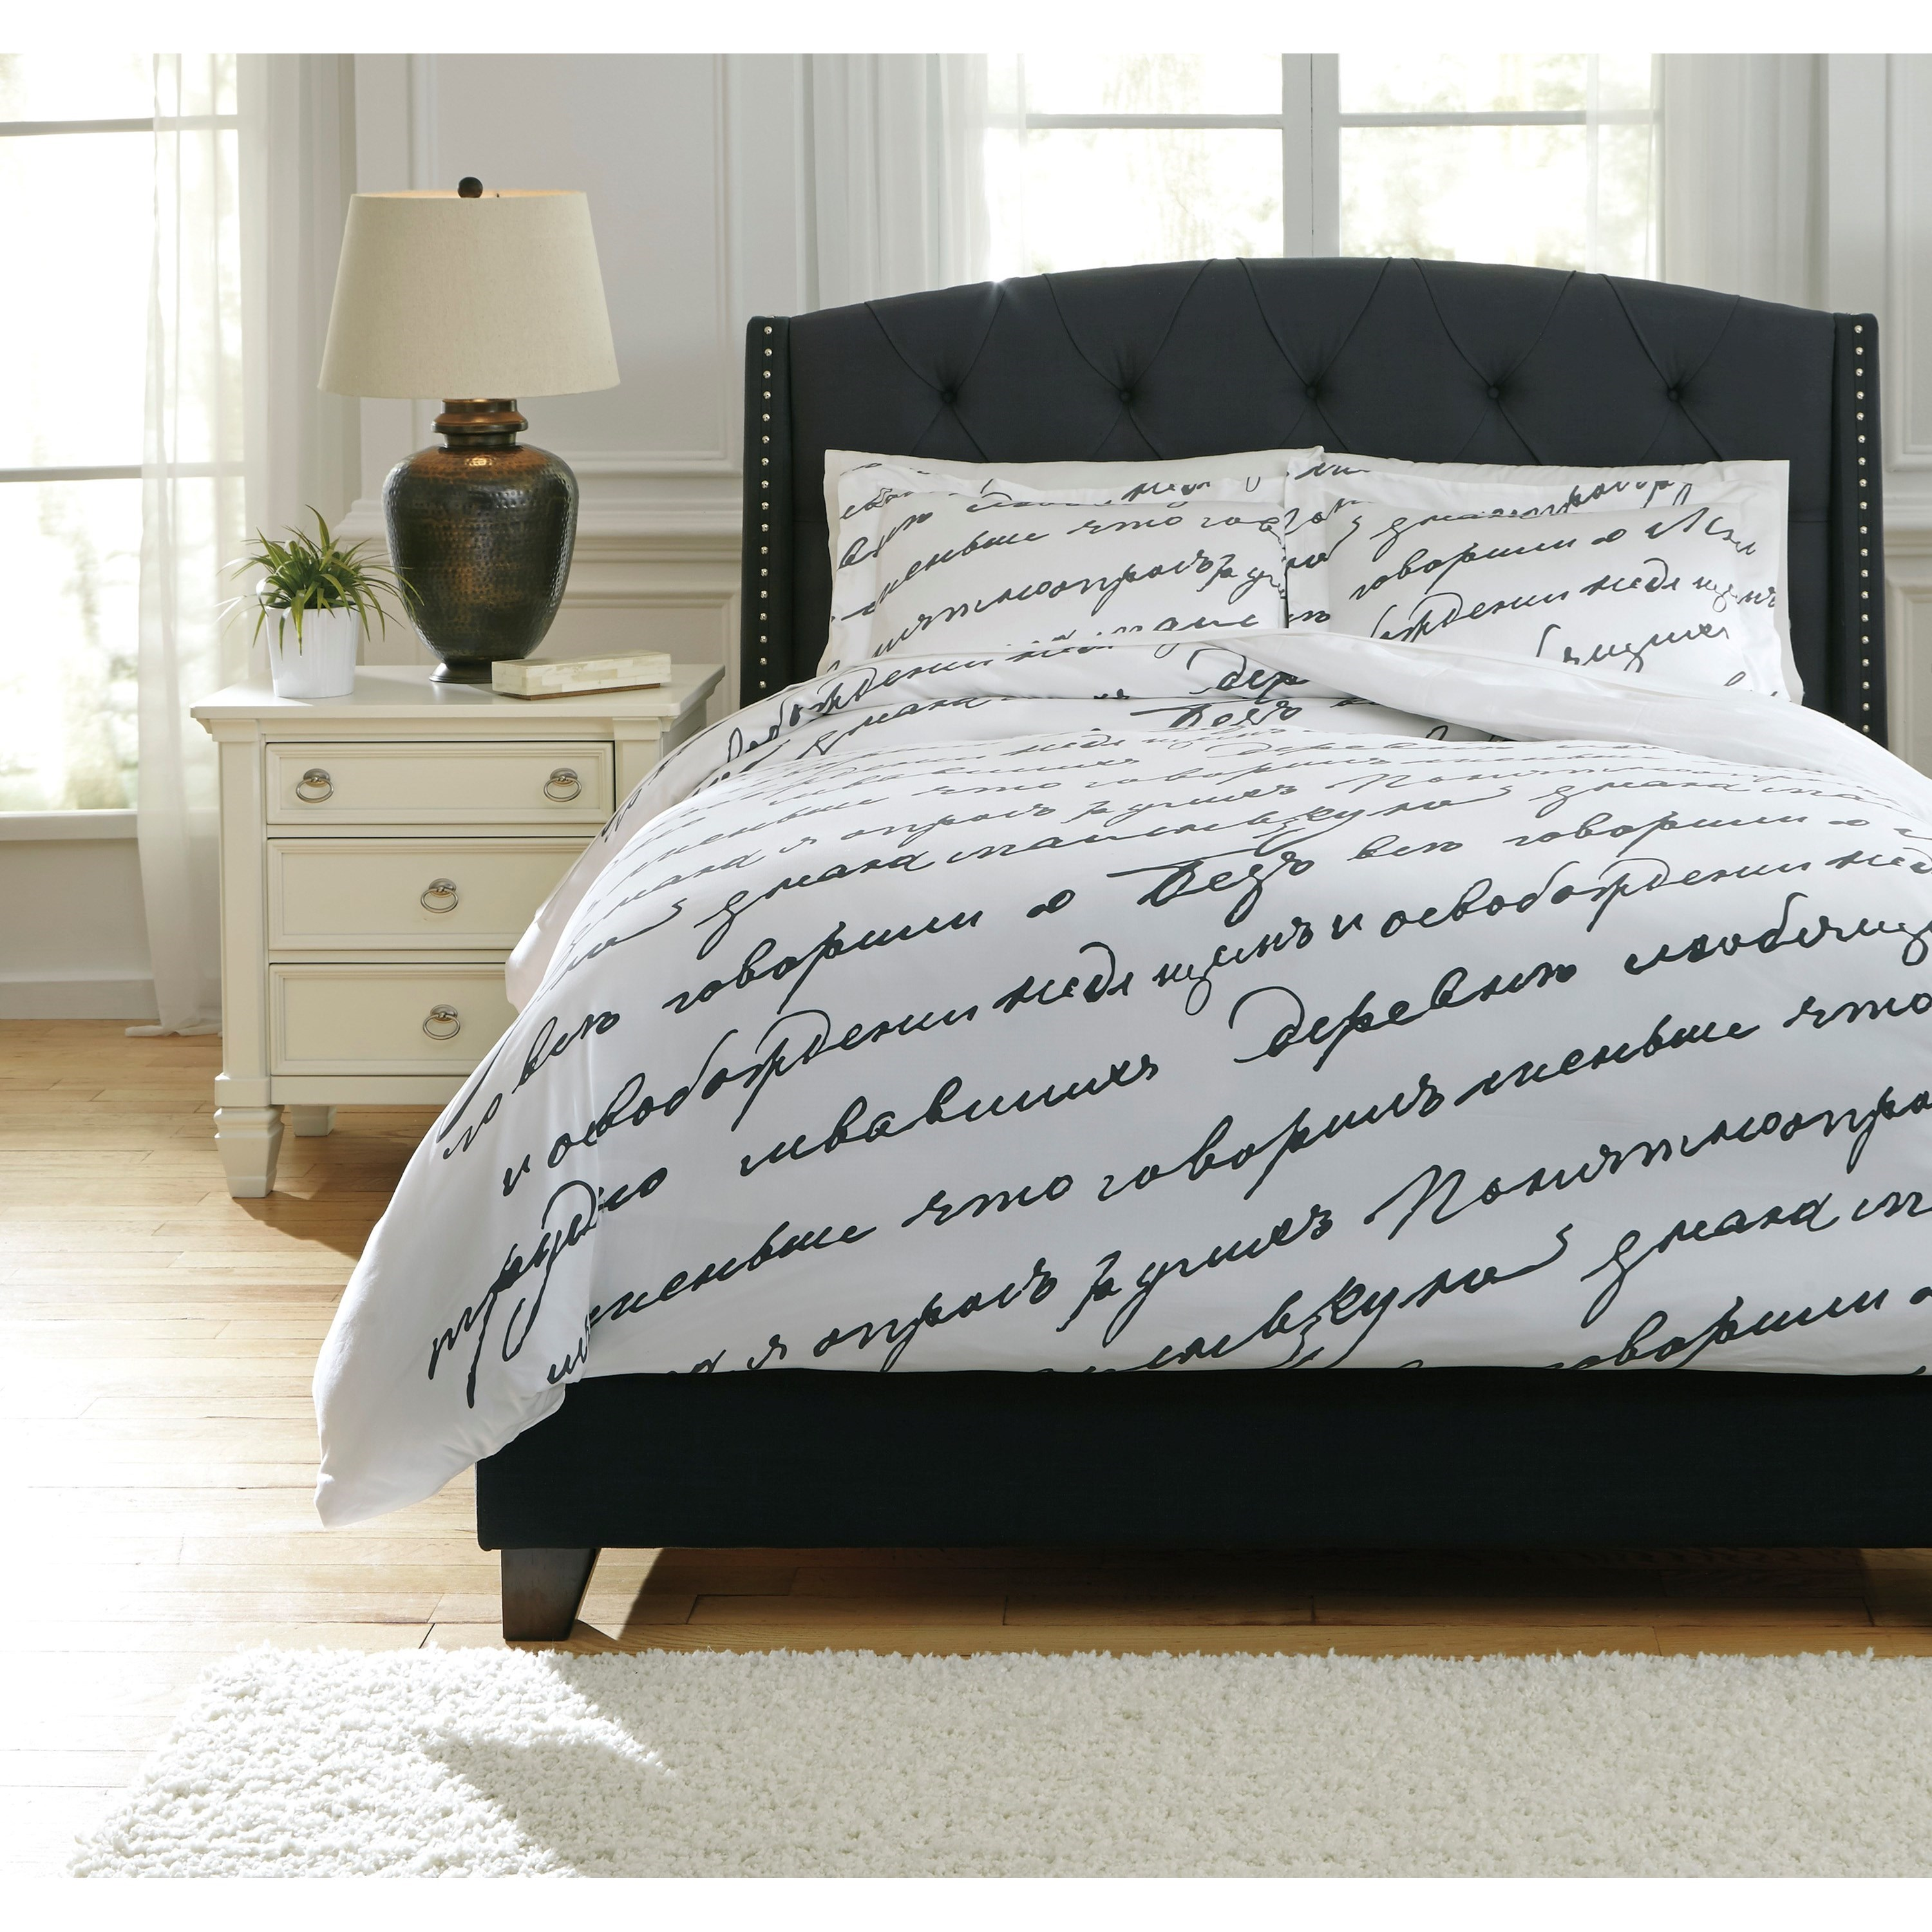 Signature Design by Ashley Bedding Sets Queen Amantipoint White/Gray Duvet Cover Set - Item Number: Q765003Q